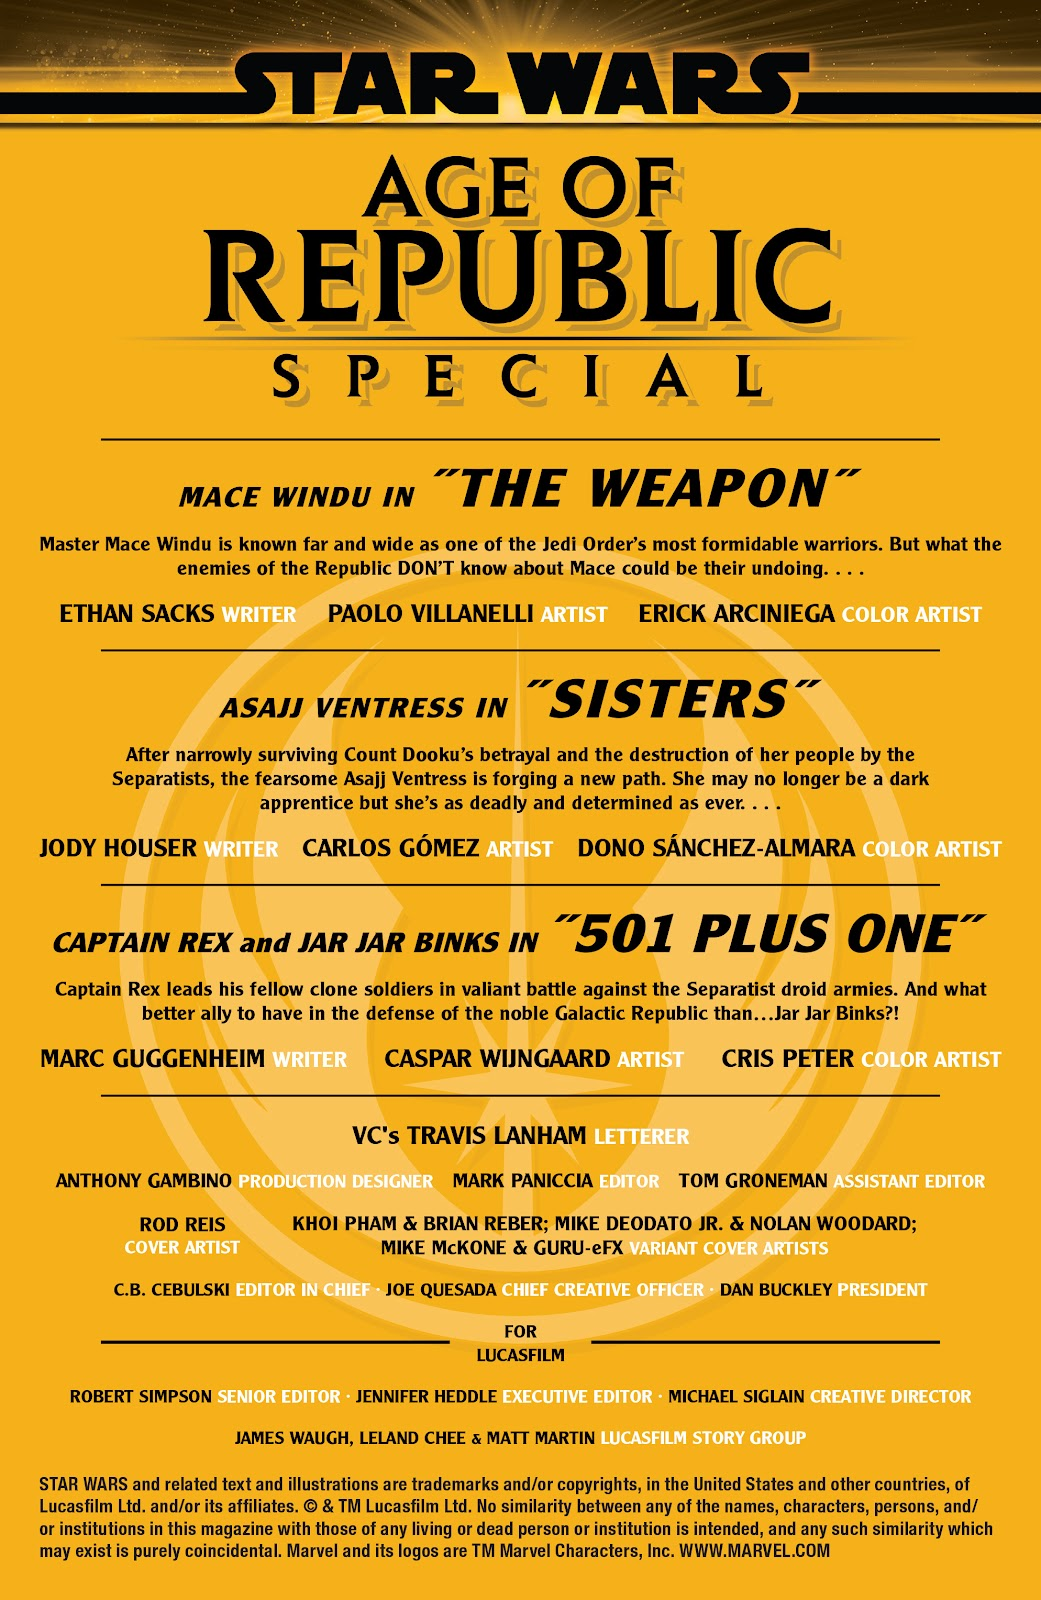 Read online Star Wars: Age of Republic Special comic -  Issue # Full - 2